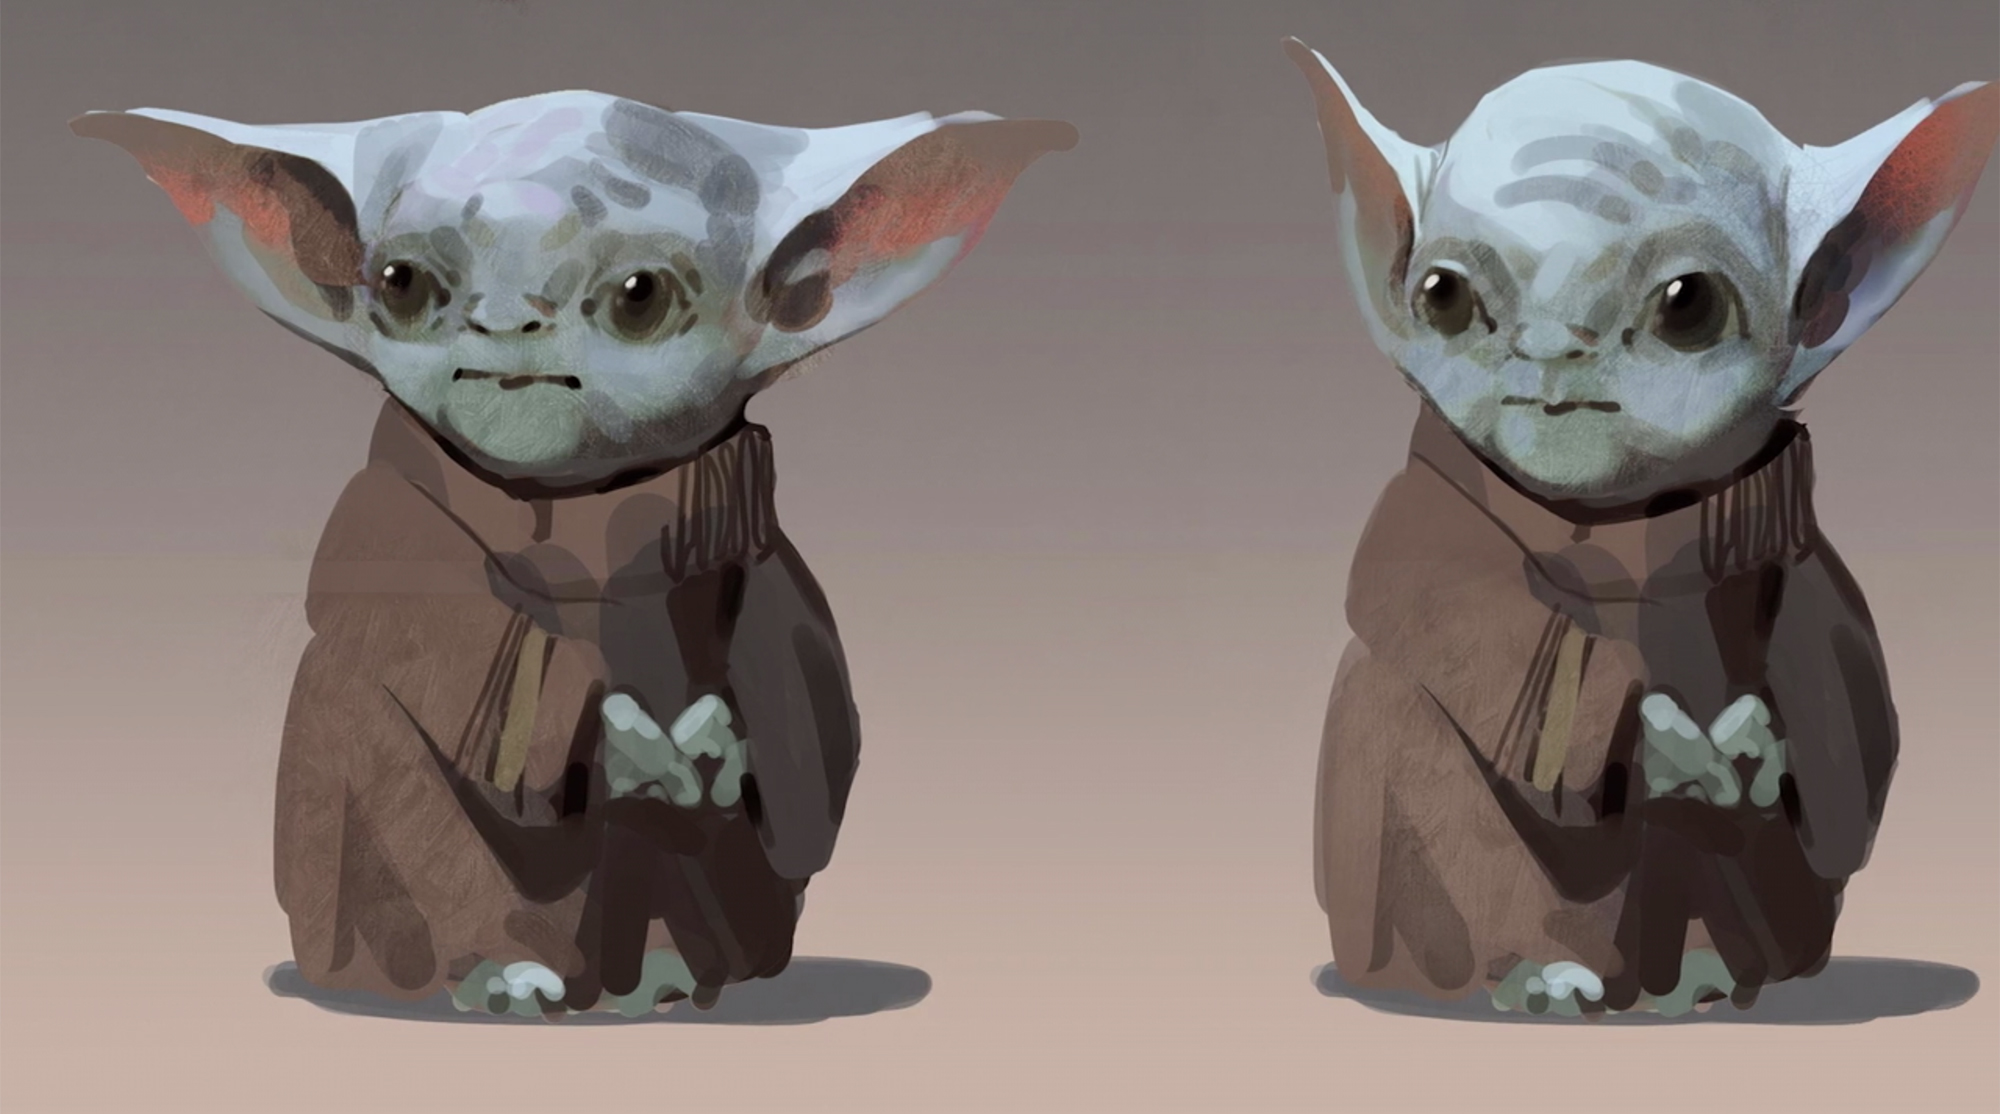 Baby Yoda Early Designs For Mandalorian Released And They're Super Creepy